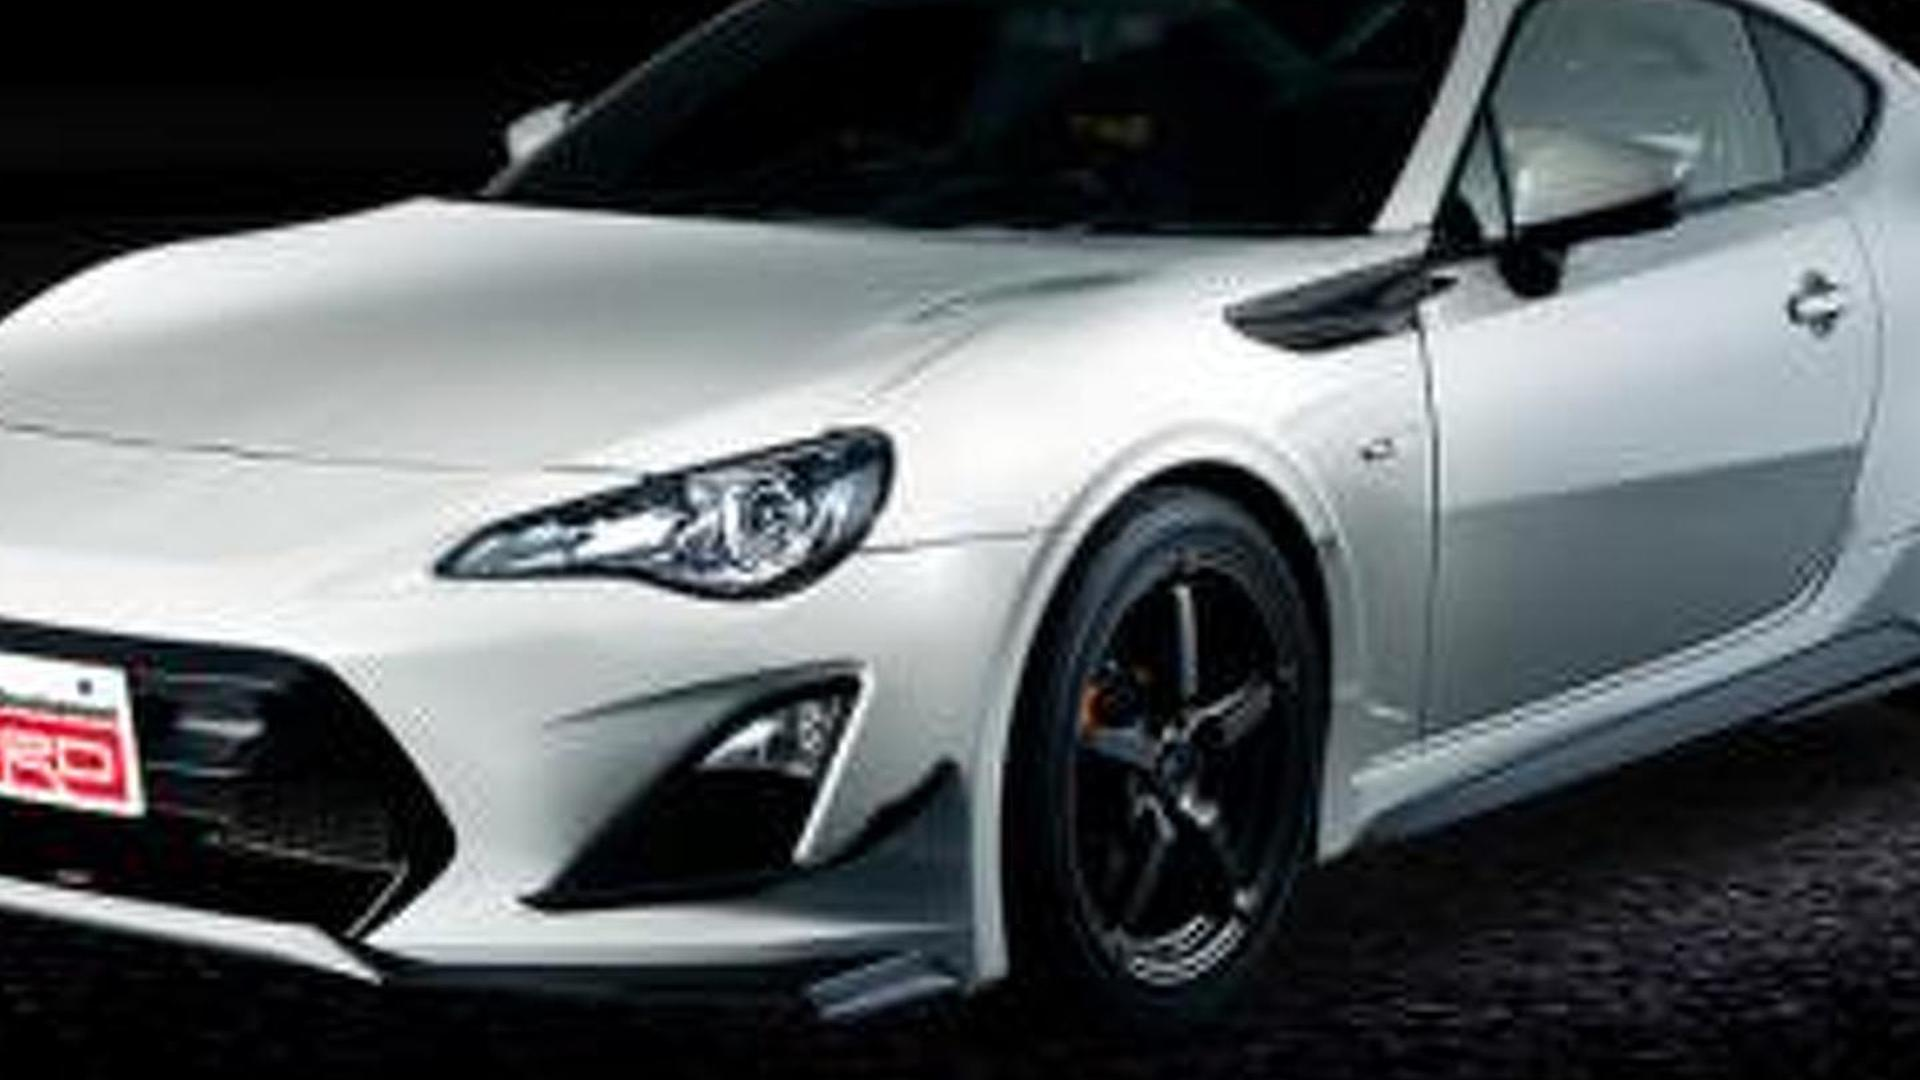 Toyota 86 14R60 unveiled in Japan